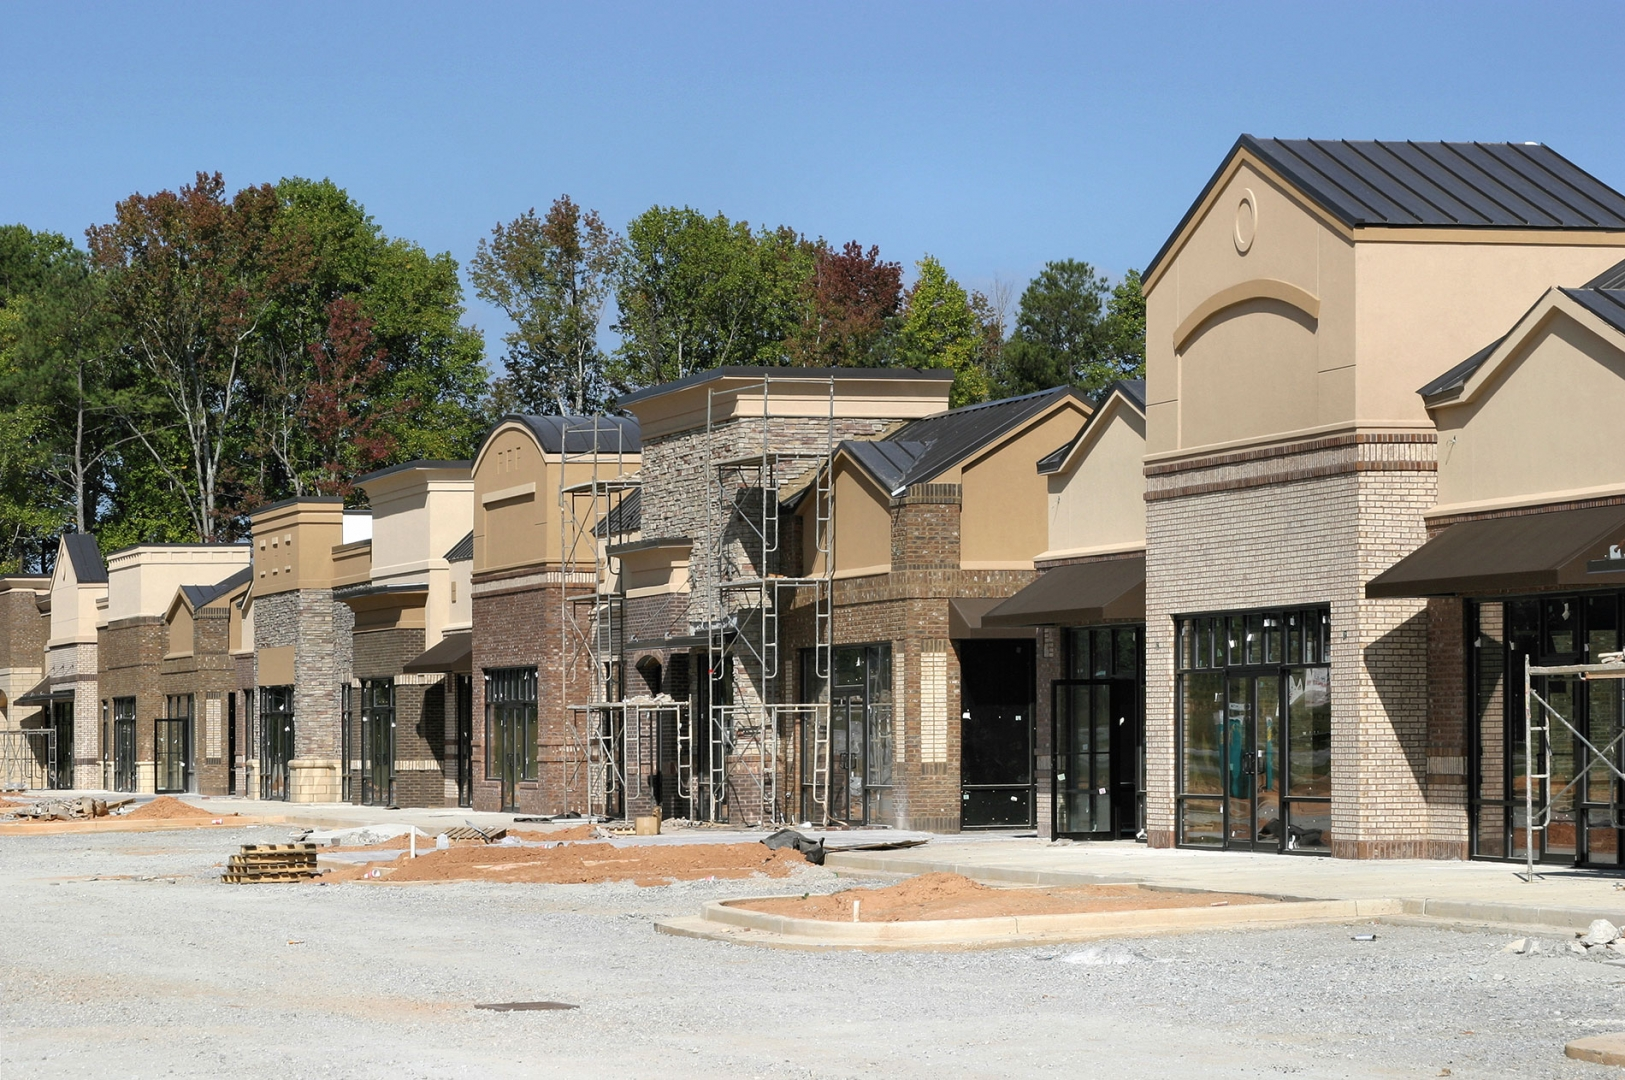 retail strip mall under construction